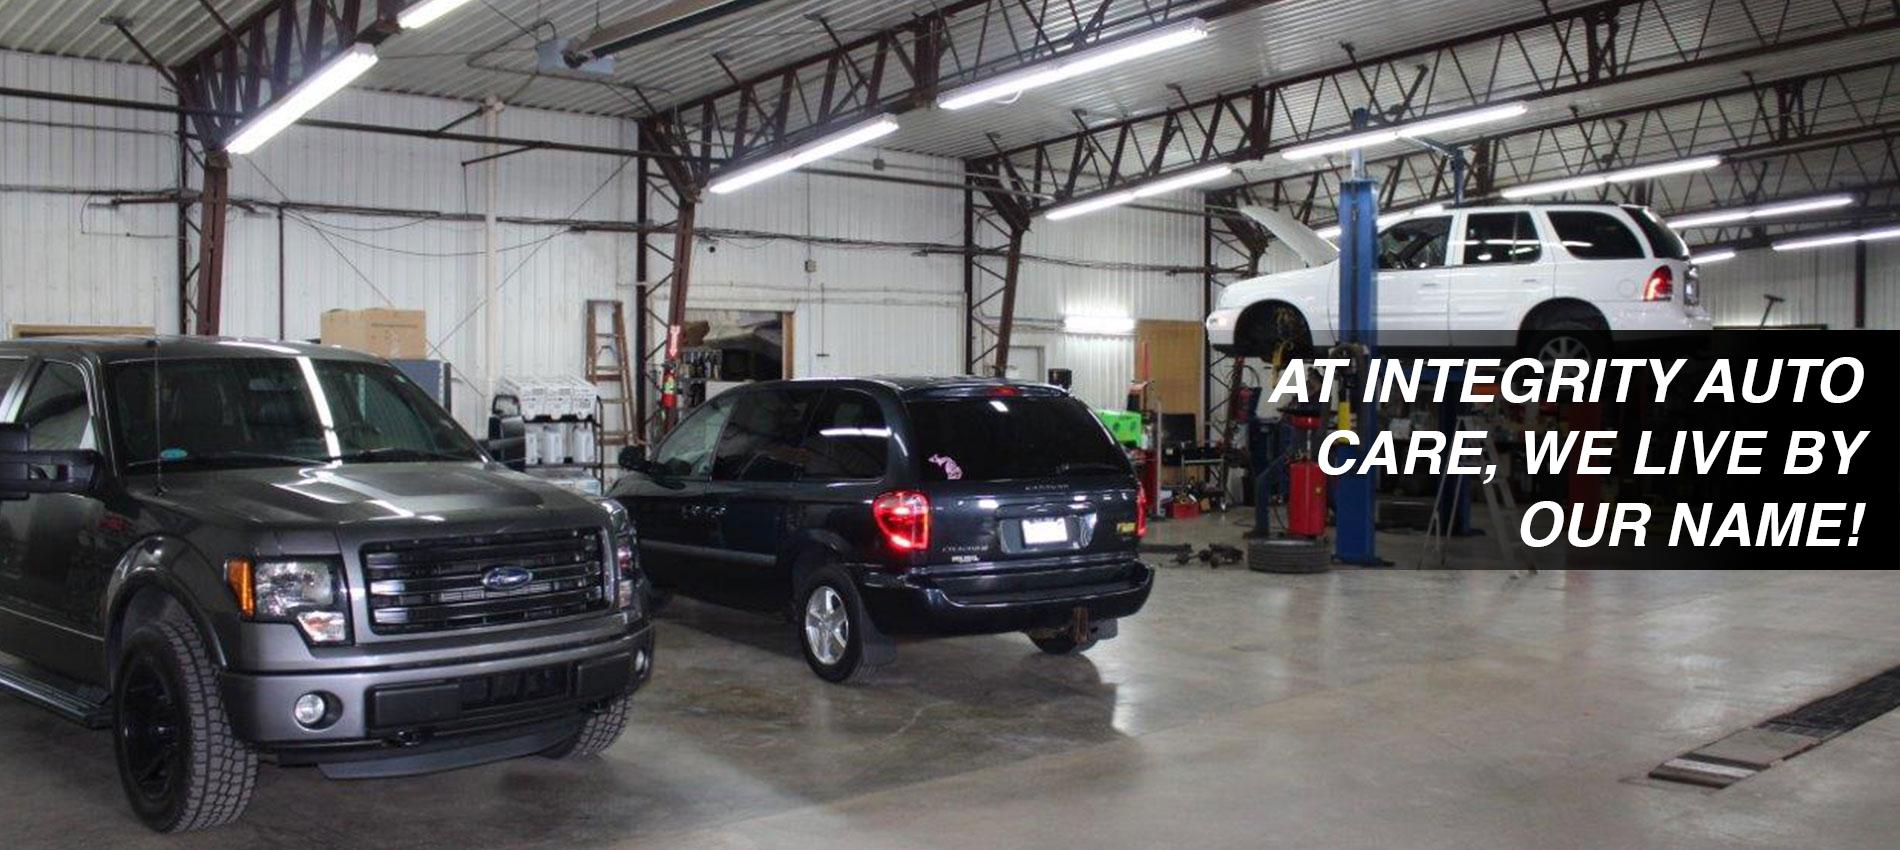 Auto Repair and Auto Maintenance in Belvidere, IL